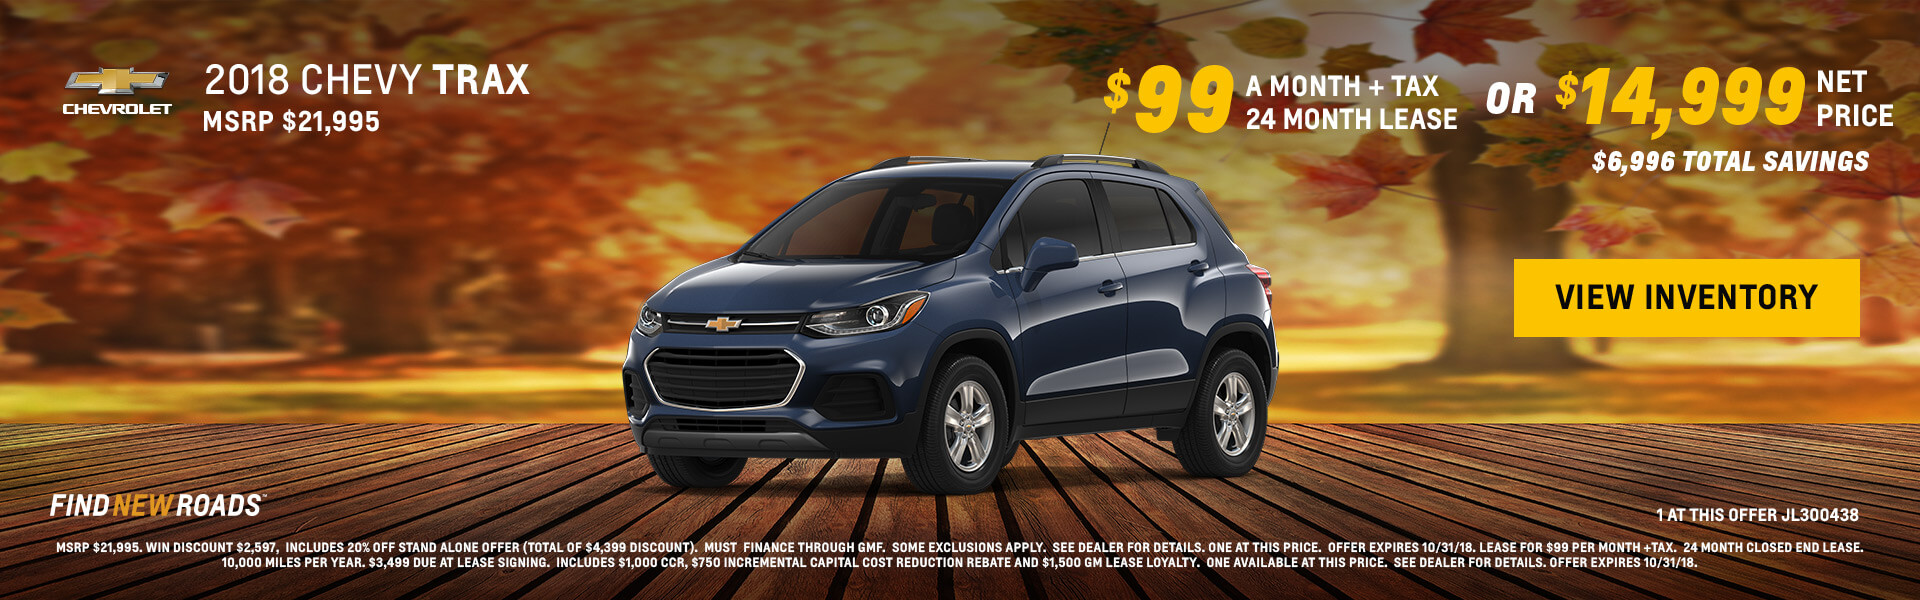 Captivating 2018 Chevy Trax $14999